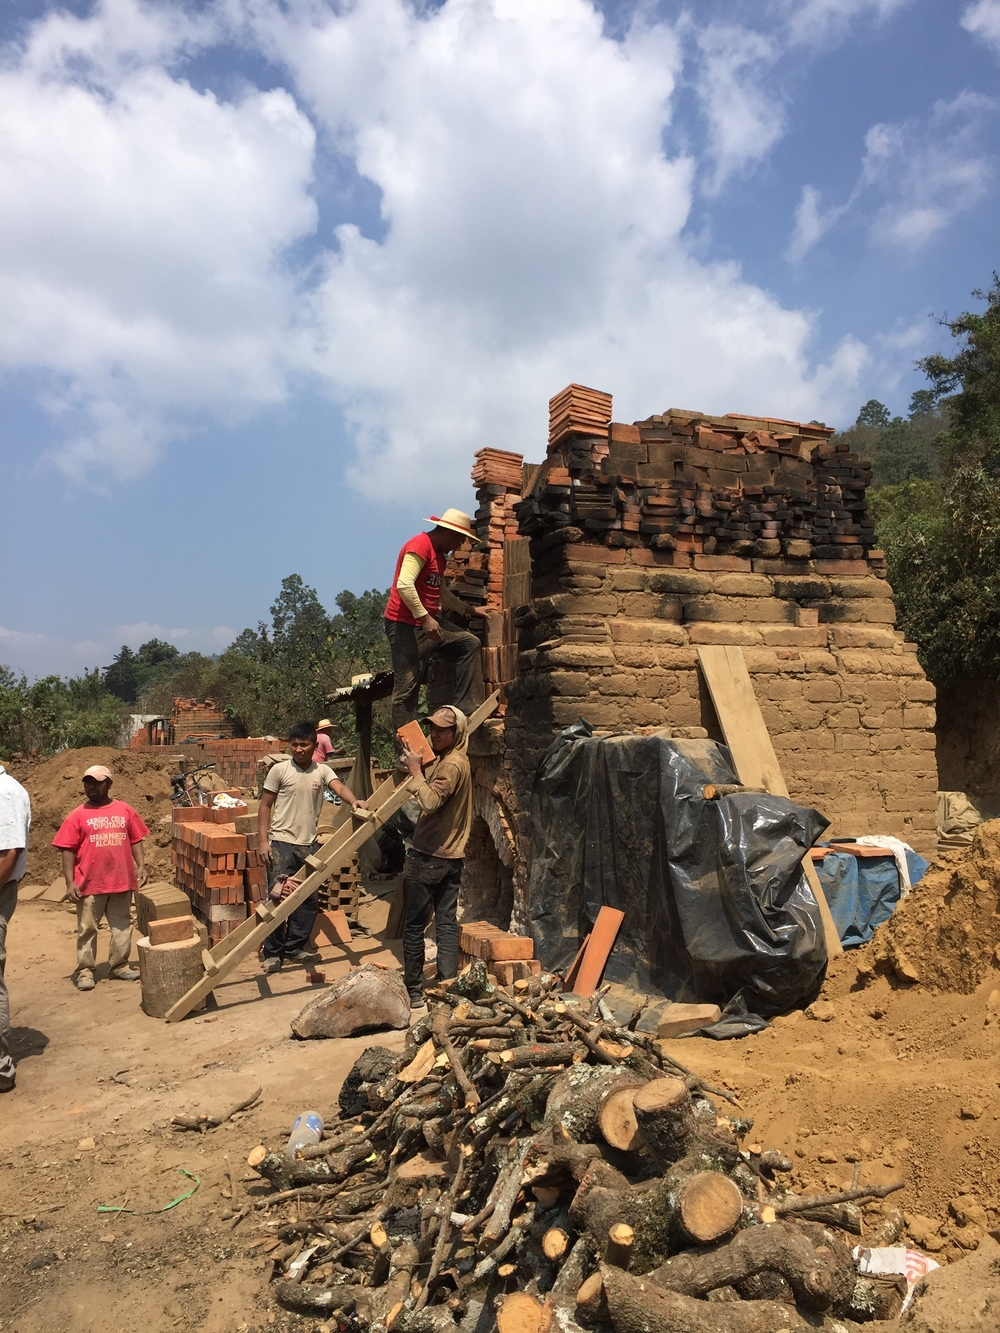 This is a small local brick-making operation along the road from Guatemala City to Panajachel known as El Tejar. The much sought-after adobe bricks are hand made and fired in small kilns.